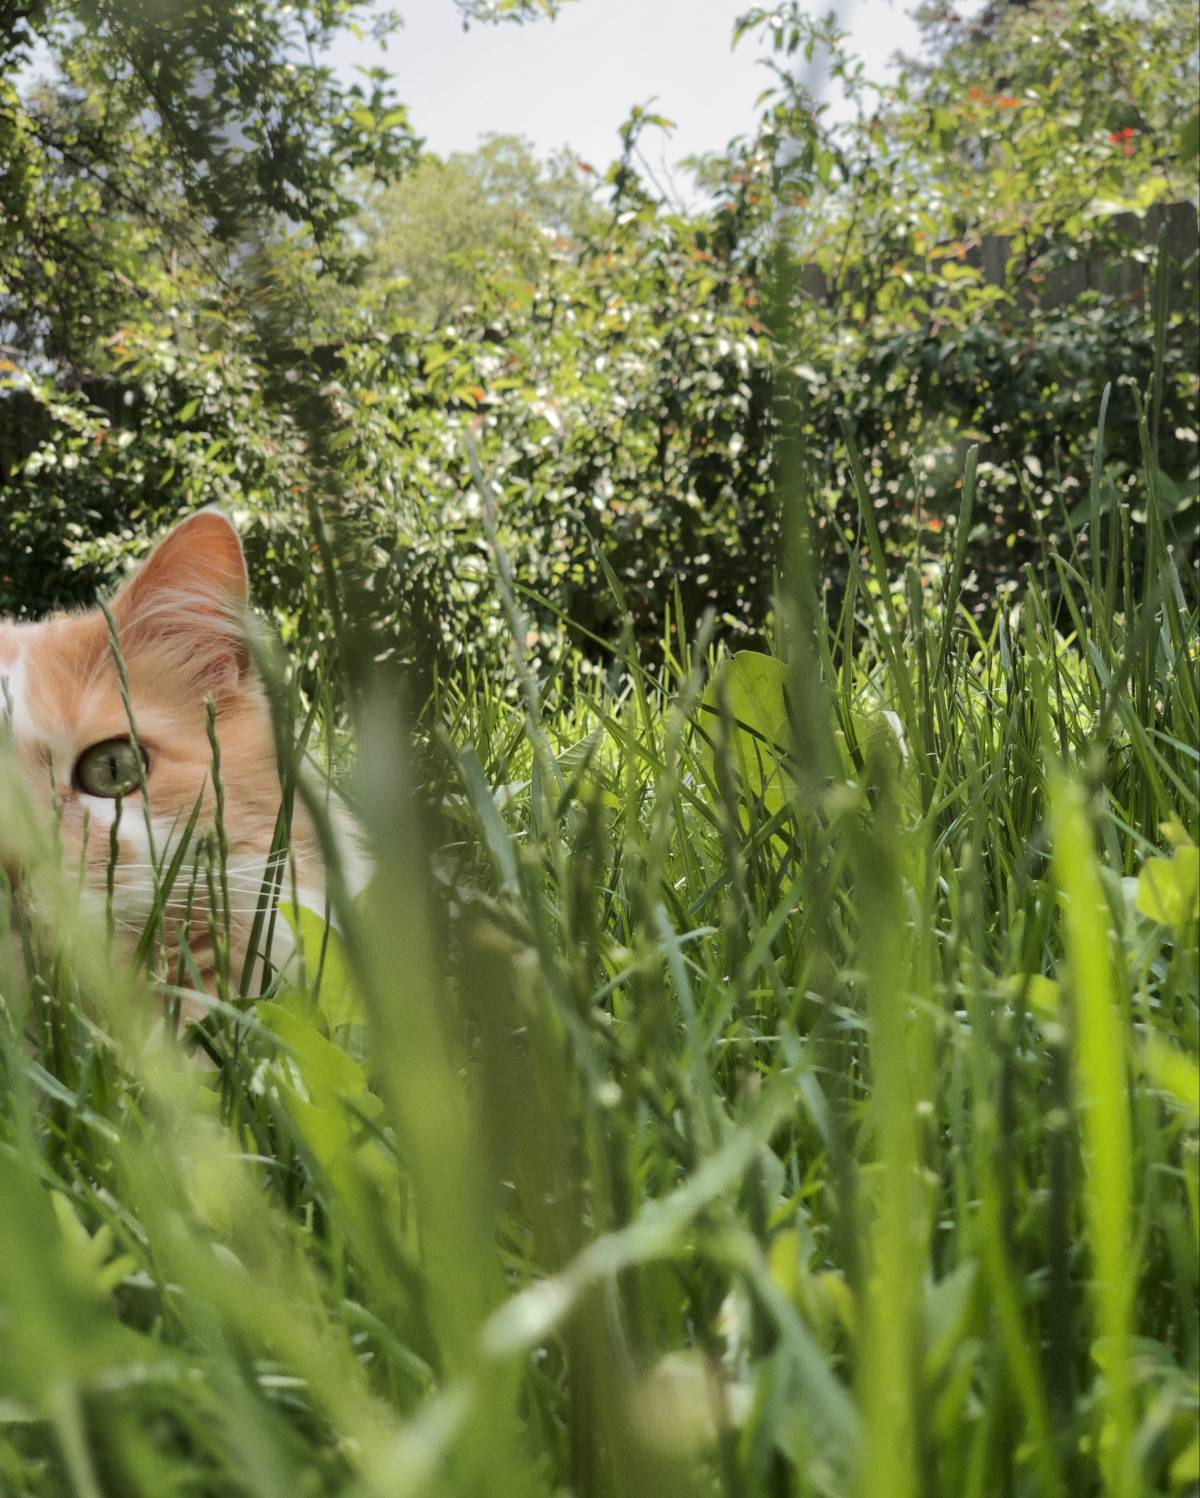 A cat tries and fails to hide in a patch of grass.